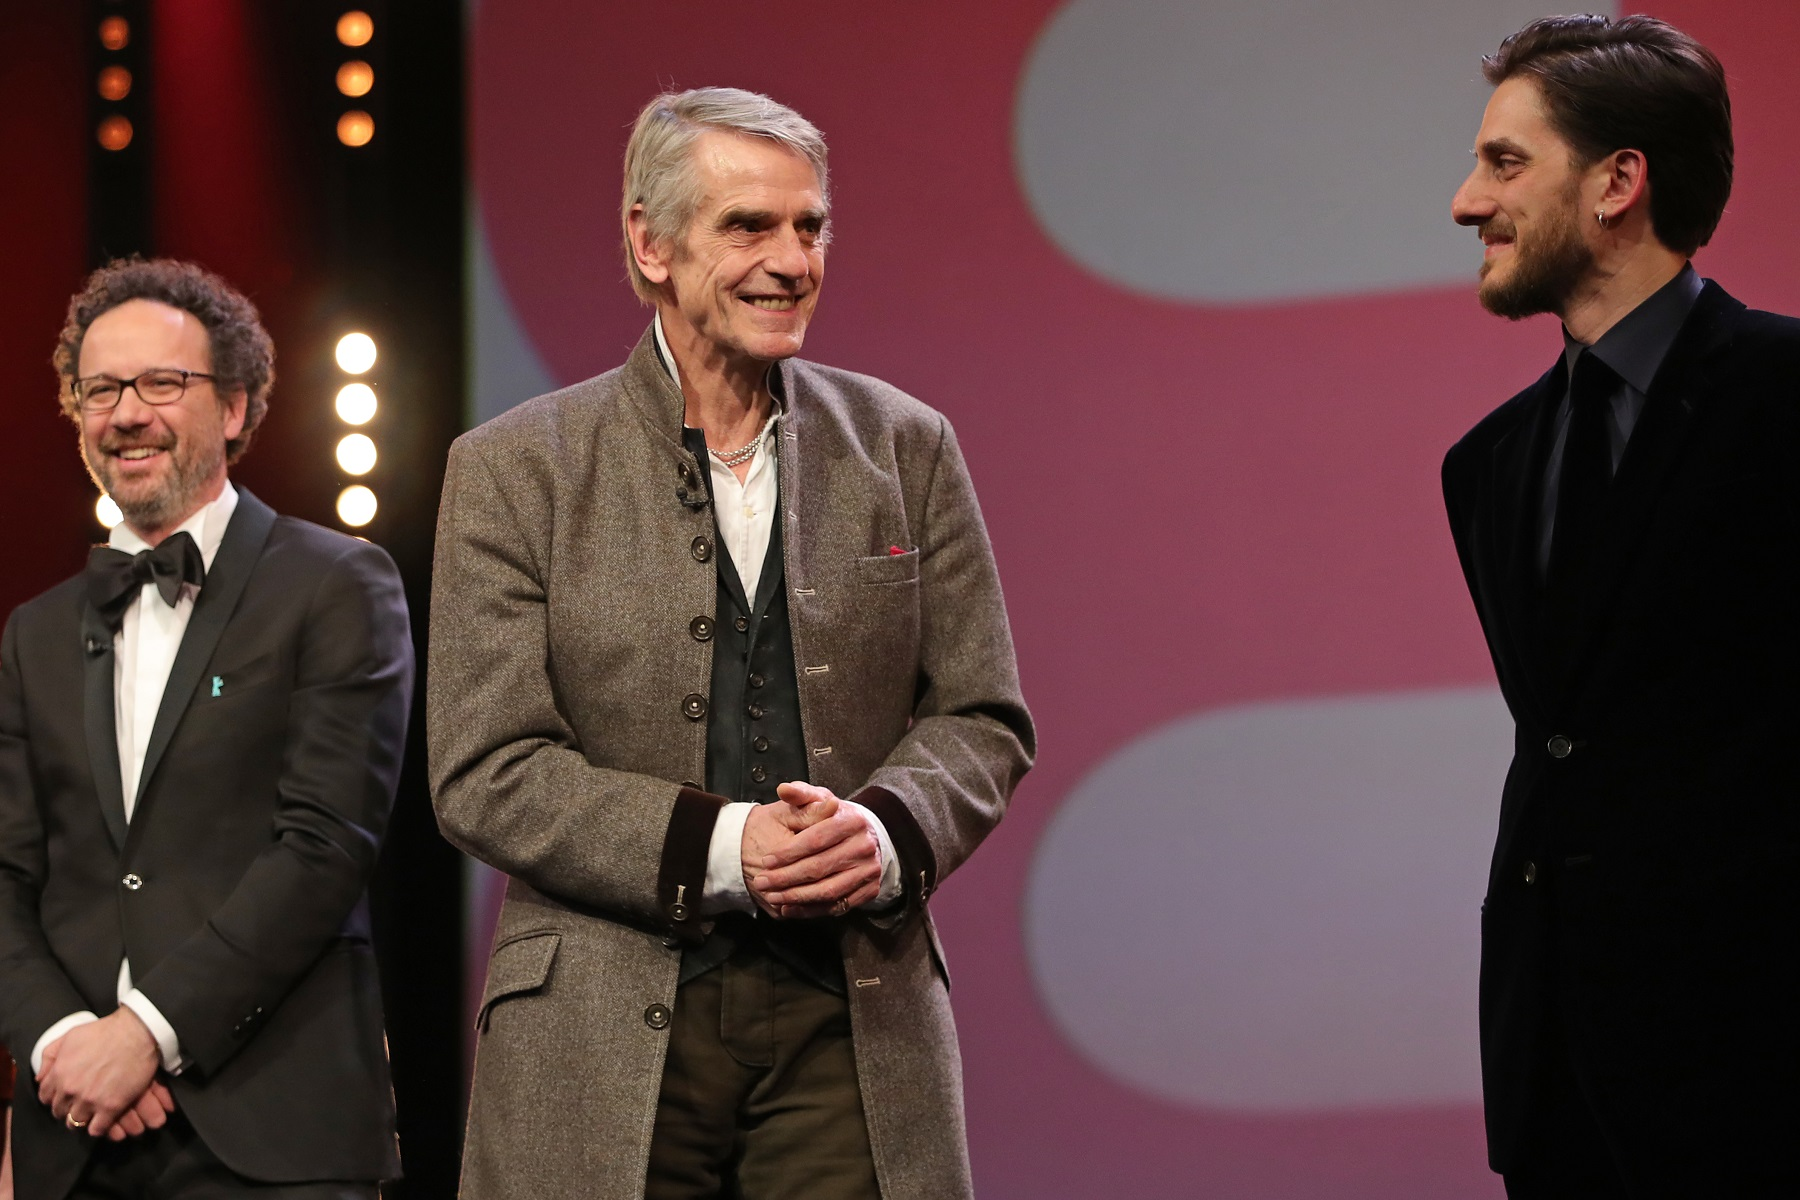 BERLIN, GERMANY - FEBRUARY 20: (L-R) Artistic Director of Berlinale Carlo Chatrian, president of the International Jury Jeremy Irons and jury member Luca Marinelli are seen on stage at the opening ceremony and